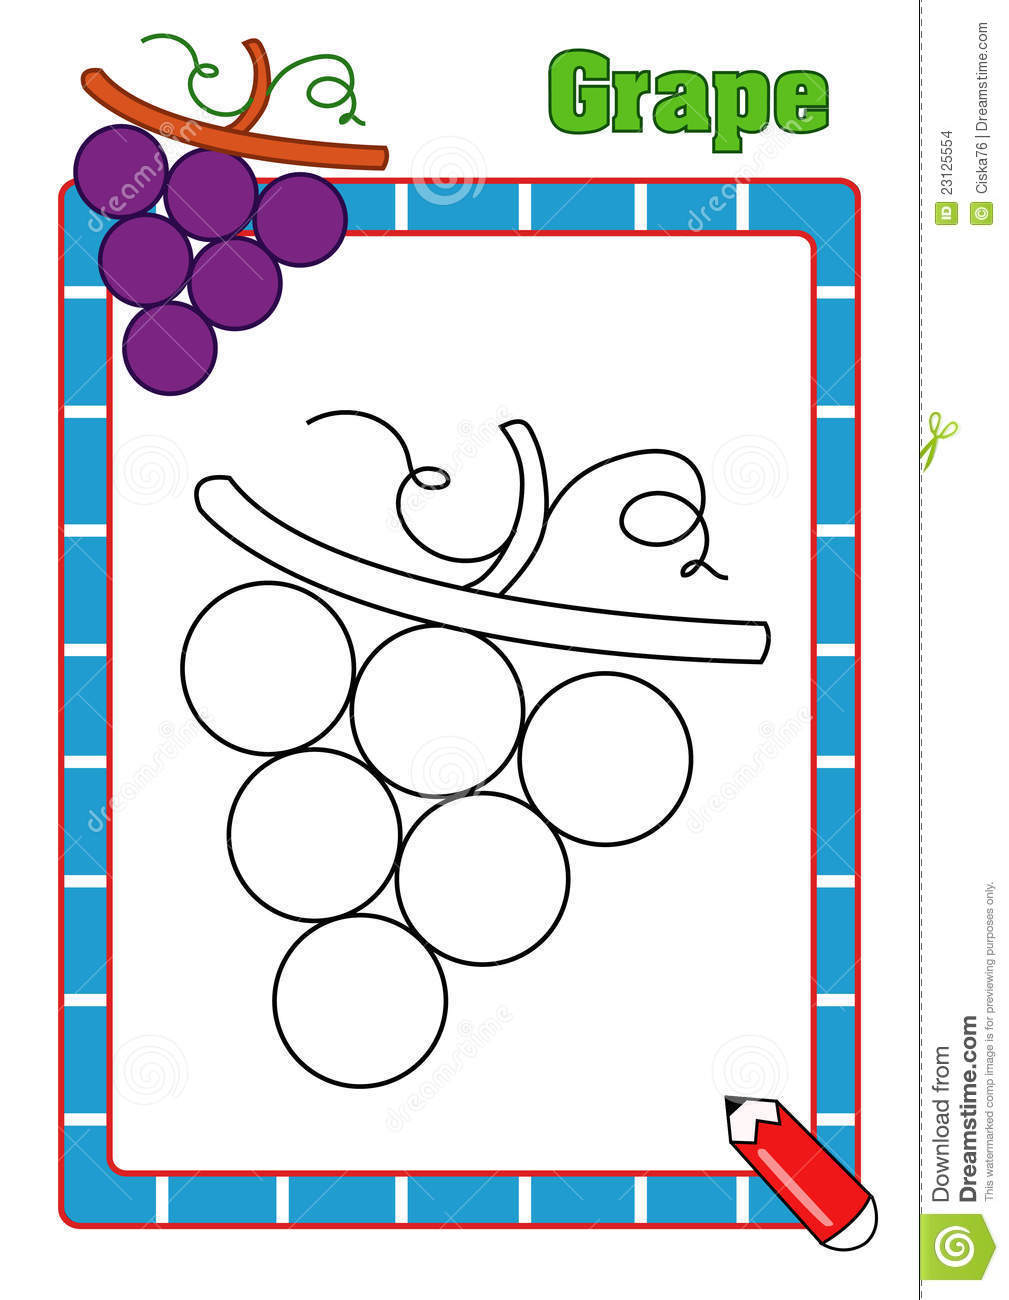 Coloring pages grapes - Coloring Book Grape